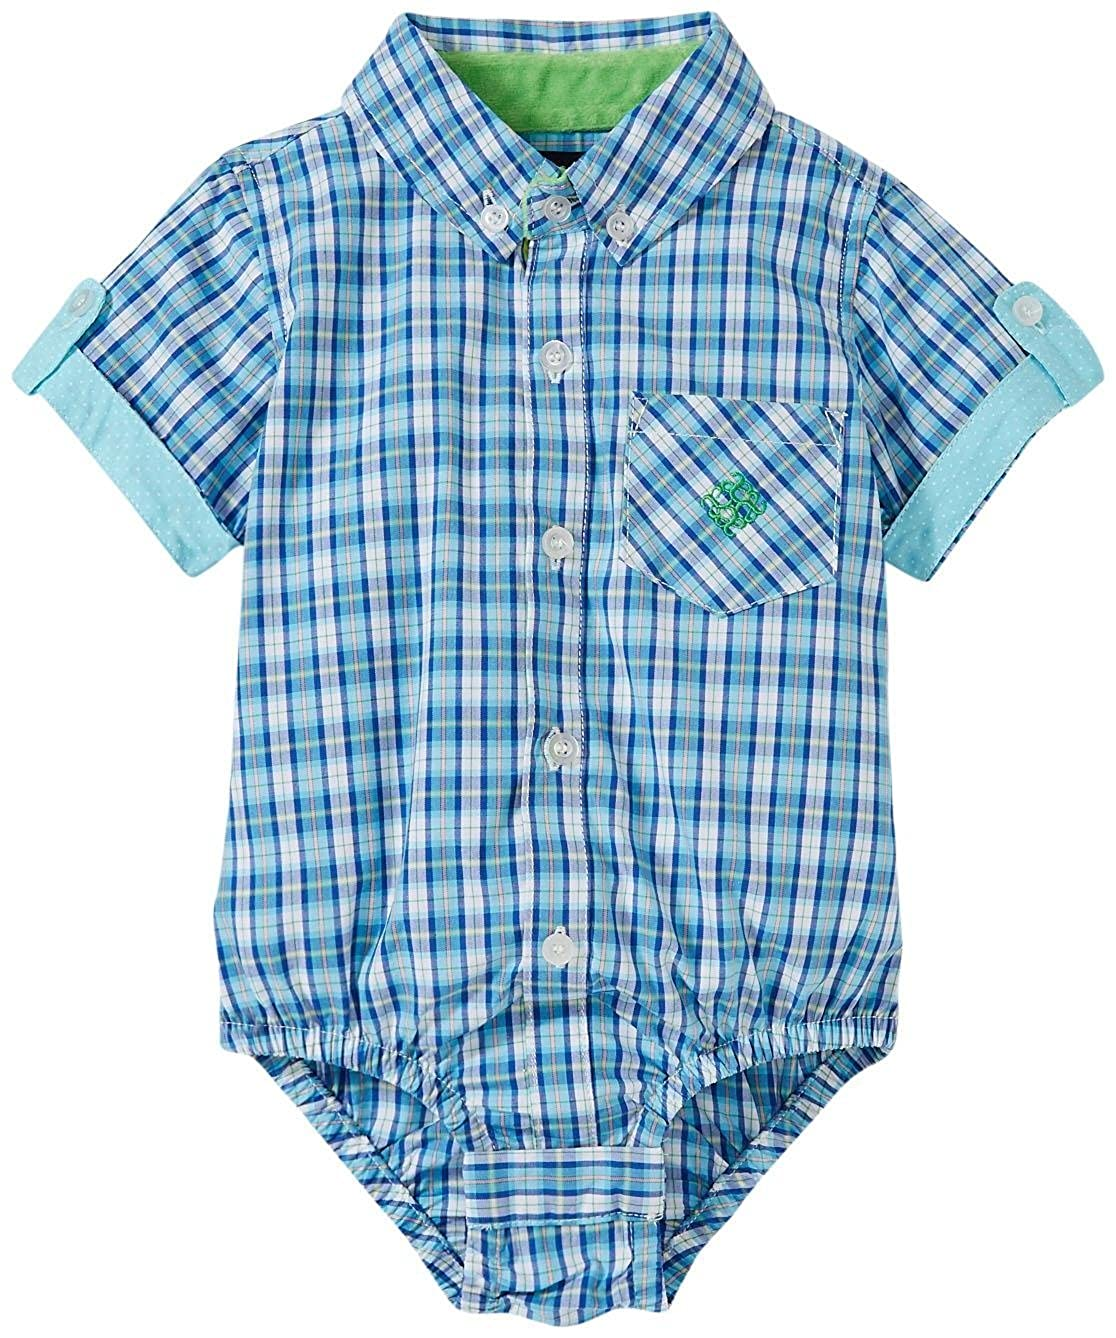 Andy /& Evan Baby Boys Checkmate Short Sleeve Shirtzie Andy /& Evan for little gentlemen 26413A-AQC